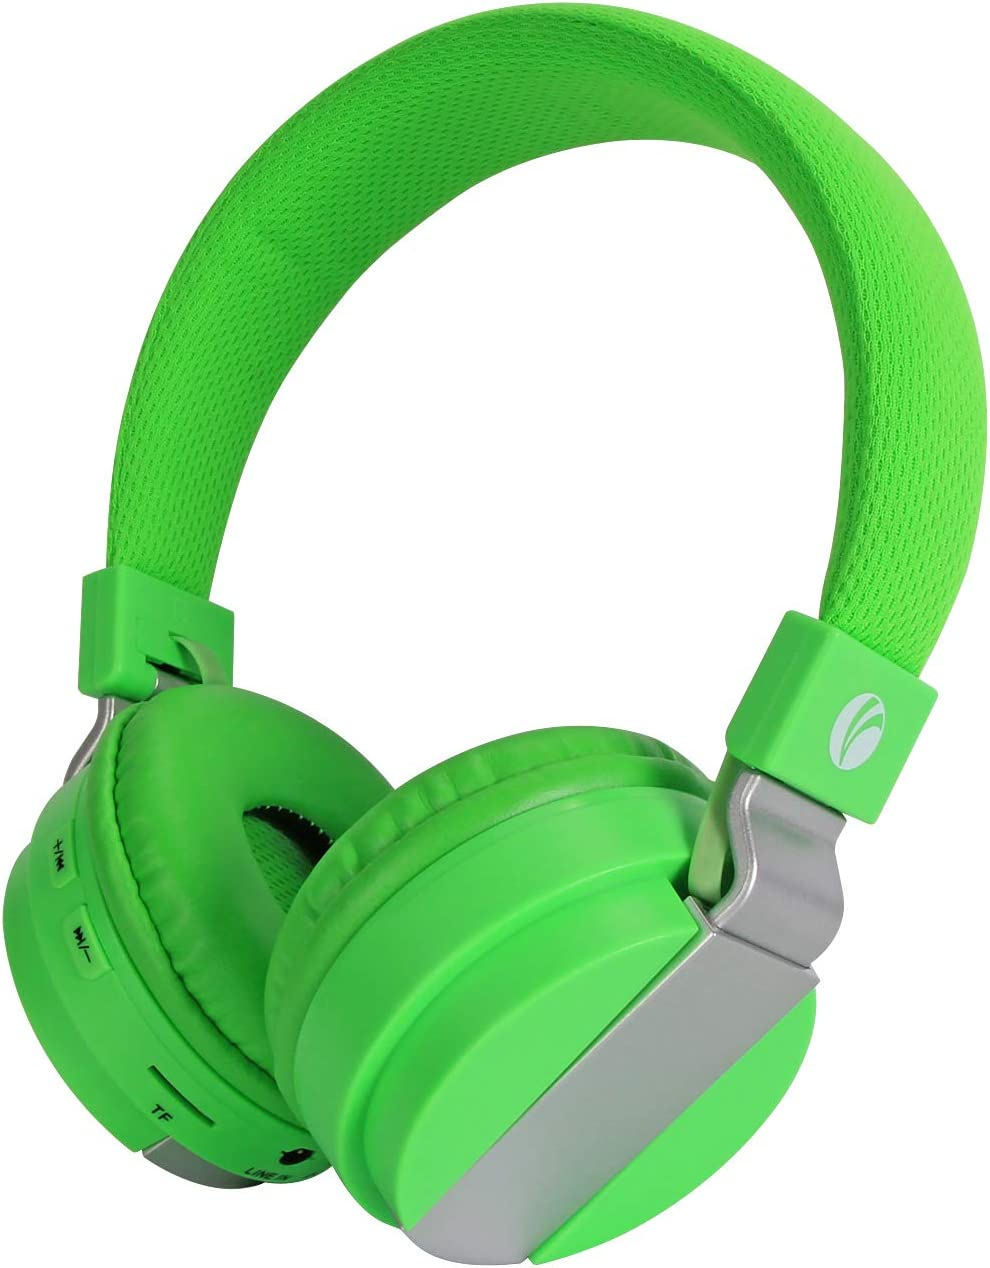 VCOM Bluetooth Headphones, Wireless and Wired Foldable Headset Stereo Music On Ear Earphones with Microphones for Kids/Teens/Youth, Compatible for Smartphones iPhone iPad Tablets Laptop PC (Green)